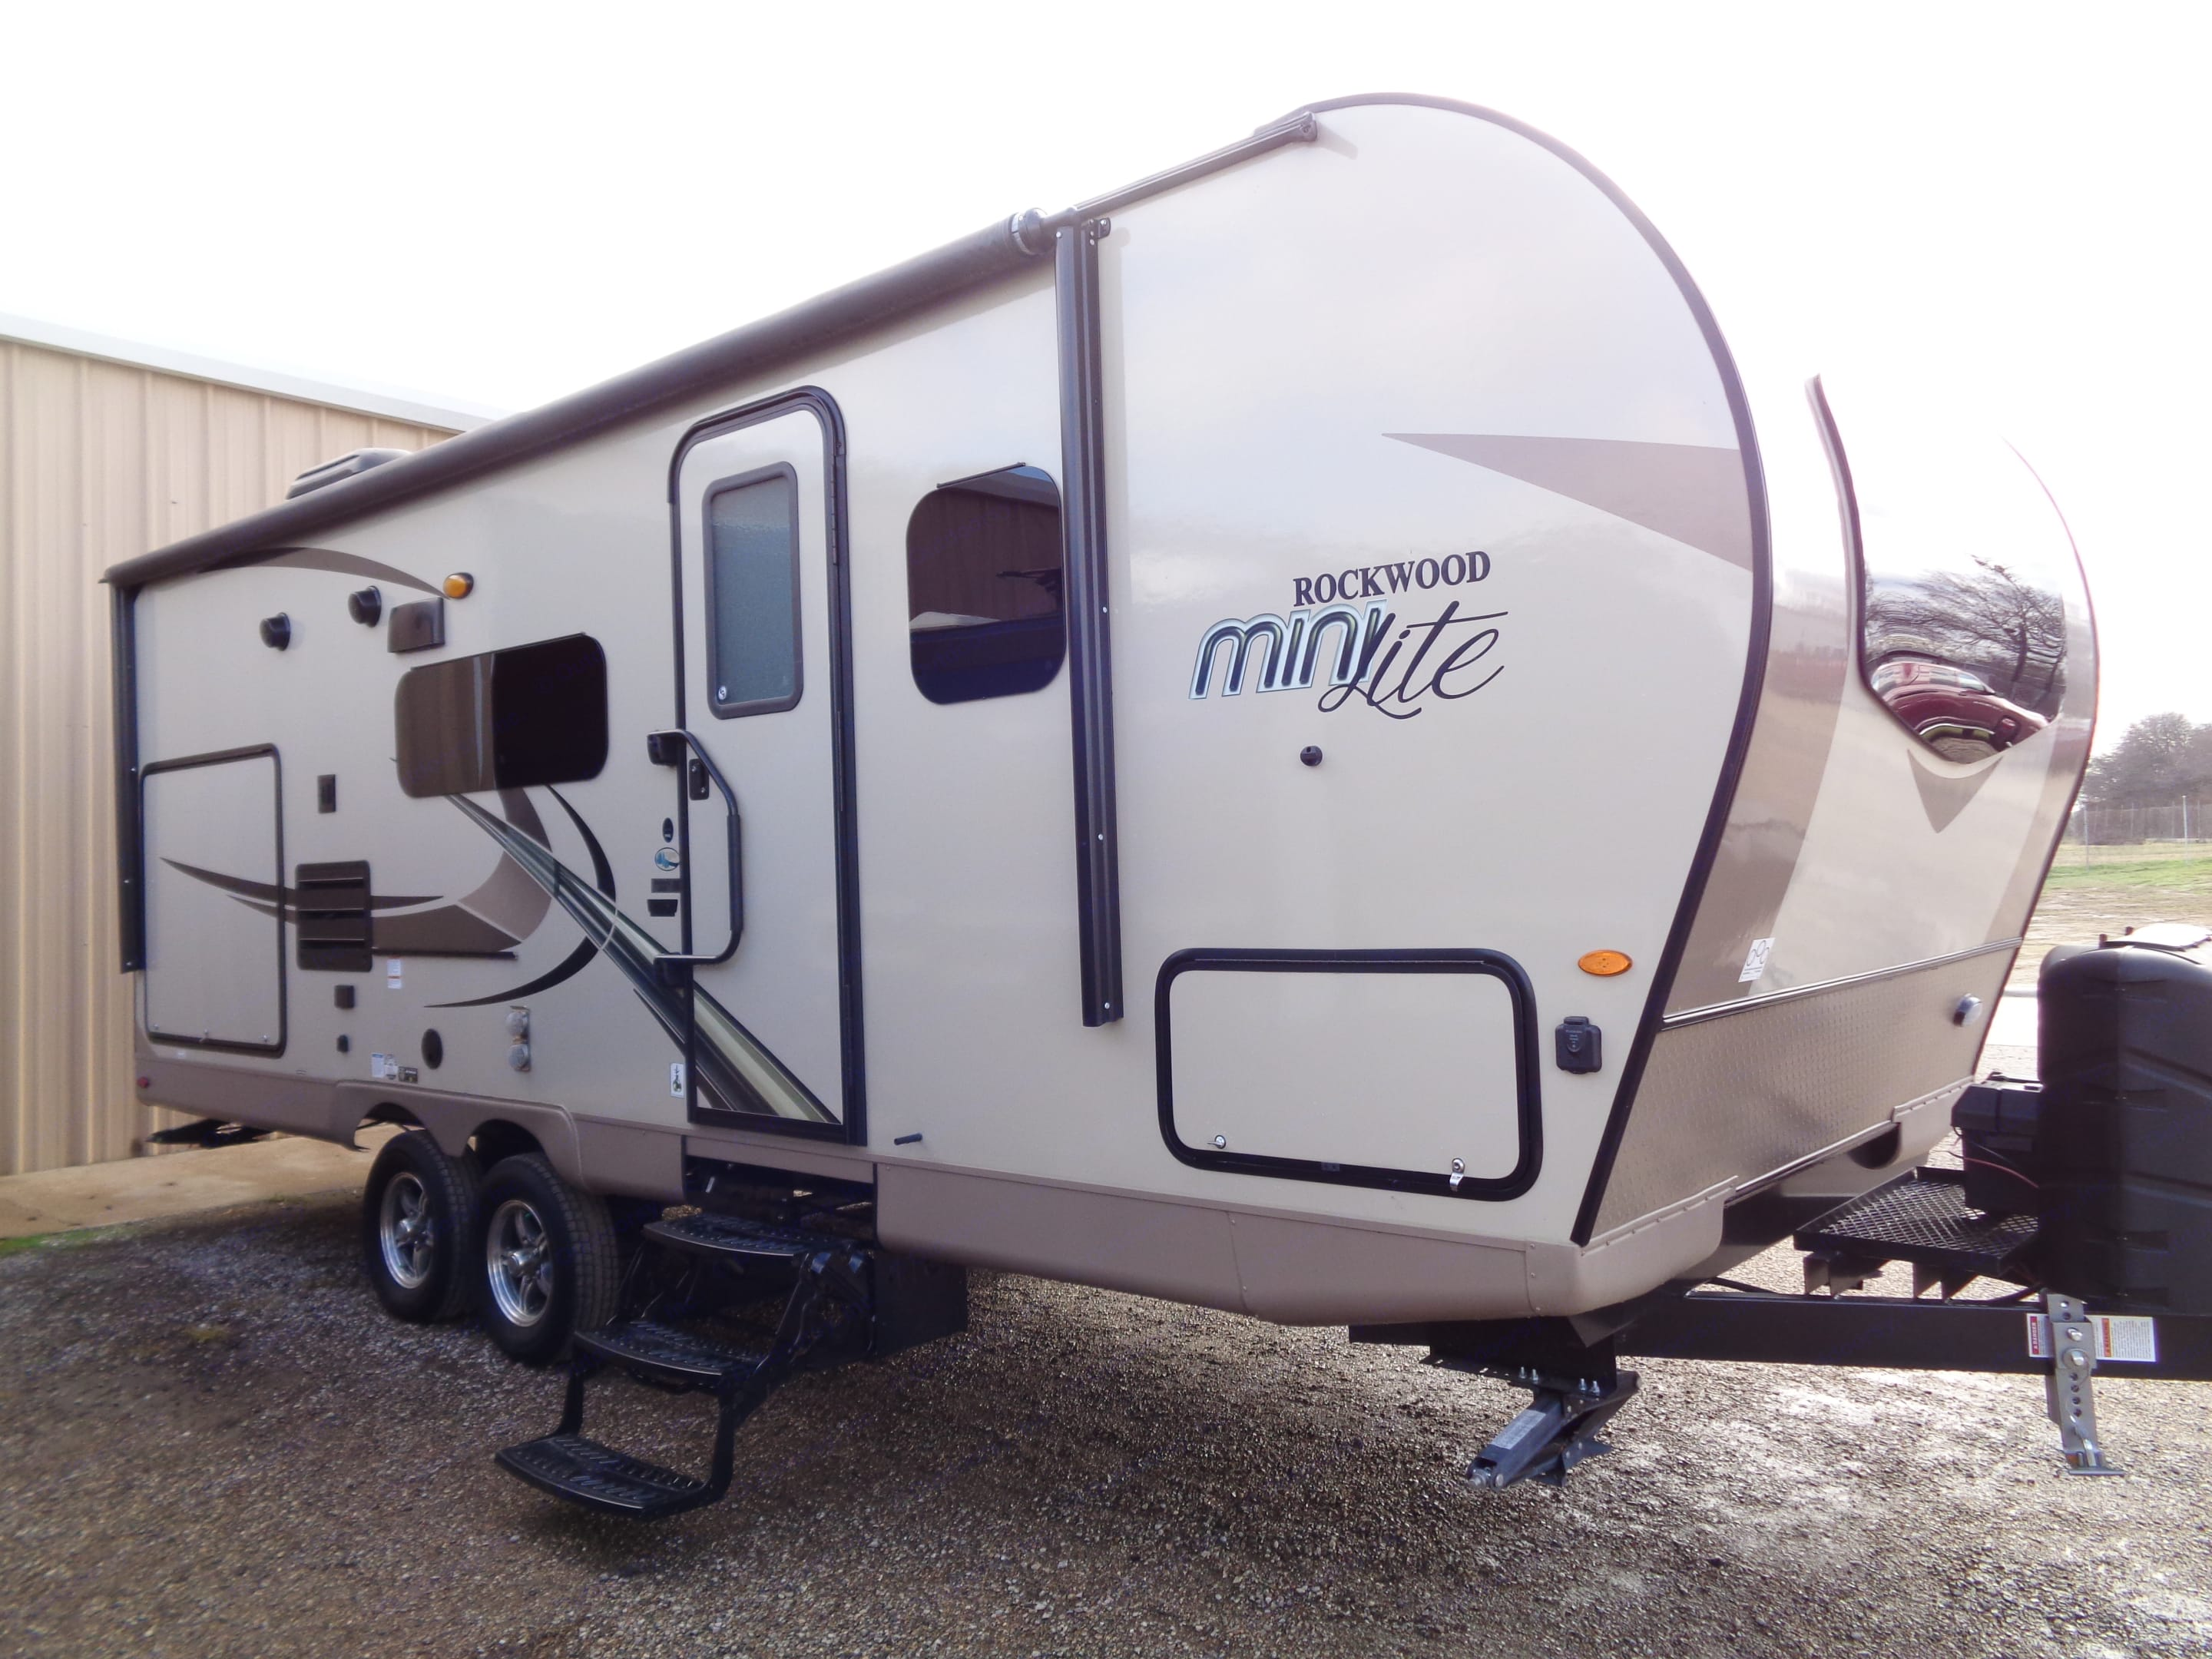 Nearly new fiberglass 26' with Murphy Bed feature. Forest River Rockwood Mini Lite 2019